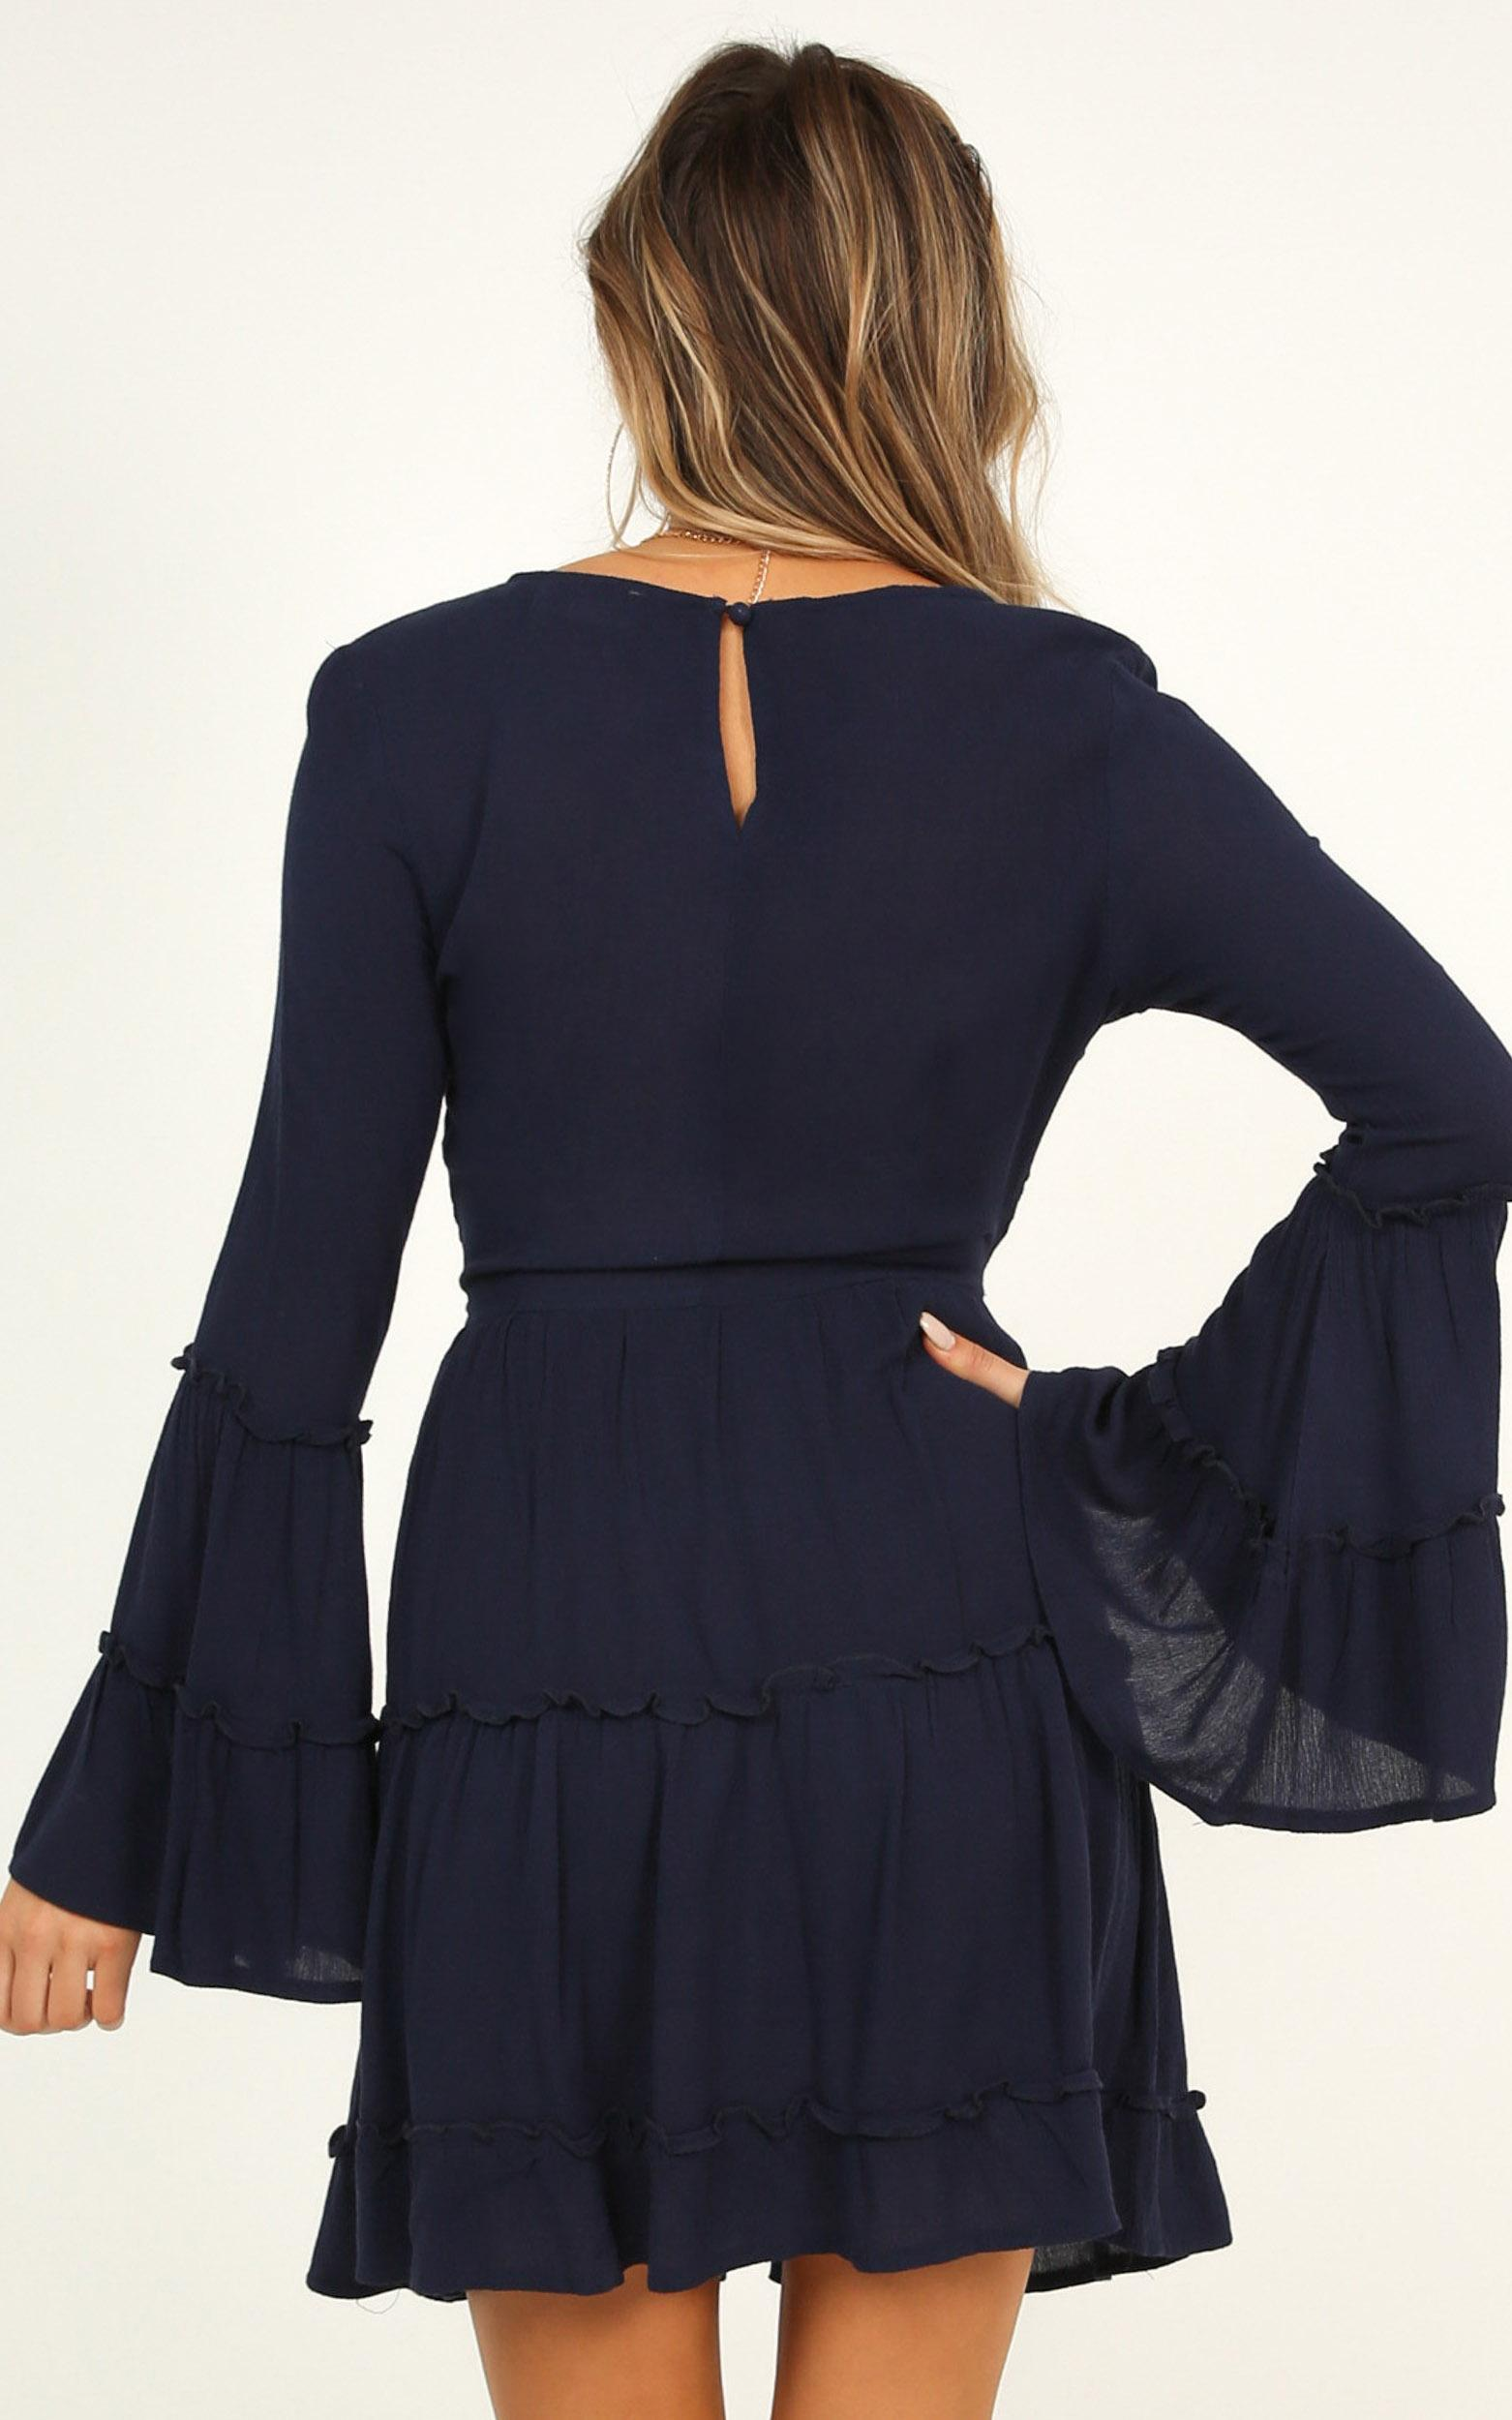 Ask Me Later Dress In Navy - 12 (L), Navy, hi-res image number null